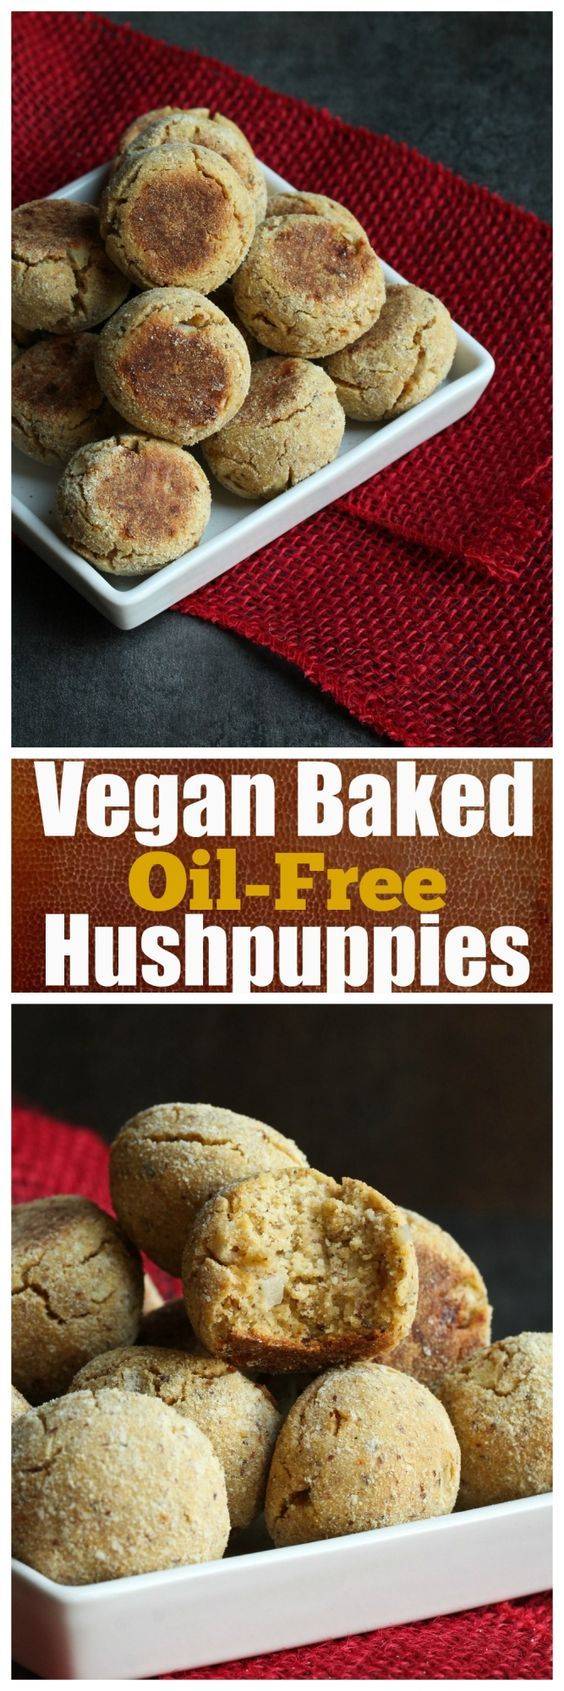 Grease-free, guilt-free Vegan Baked Oil-Free Hushpuppies! So soft and delicious, you won't miss the grease!   http://TheVegan8.com   #vegan #glutenfree #oilfree #baked #hushpuppies